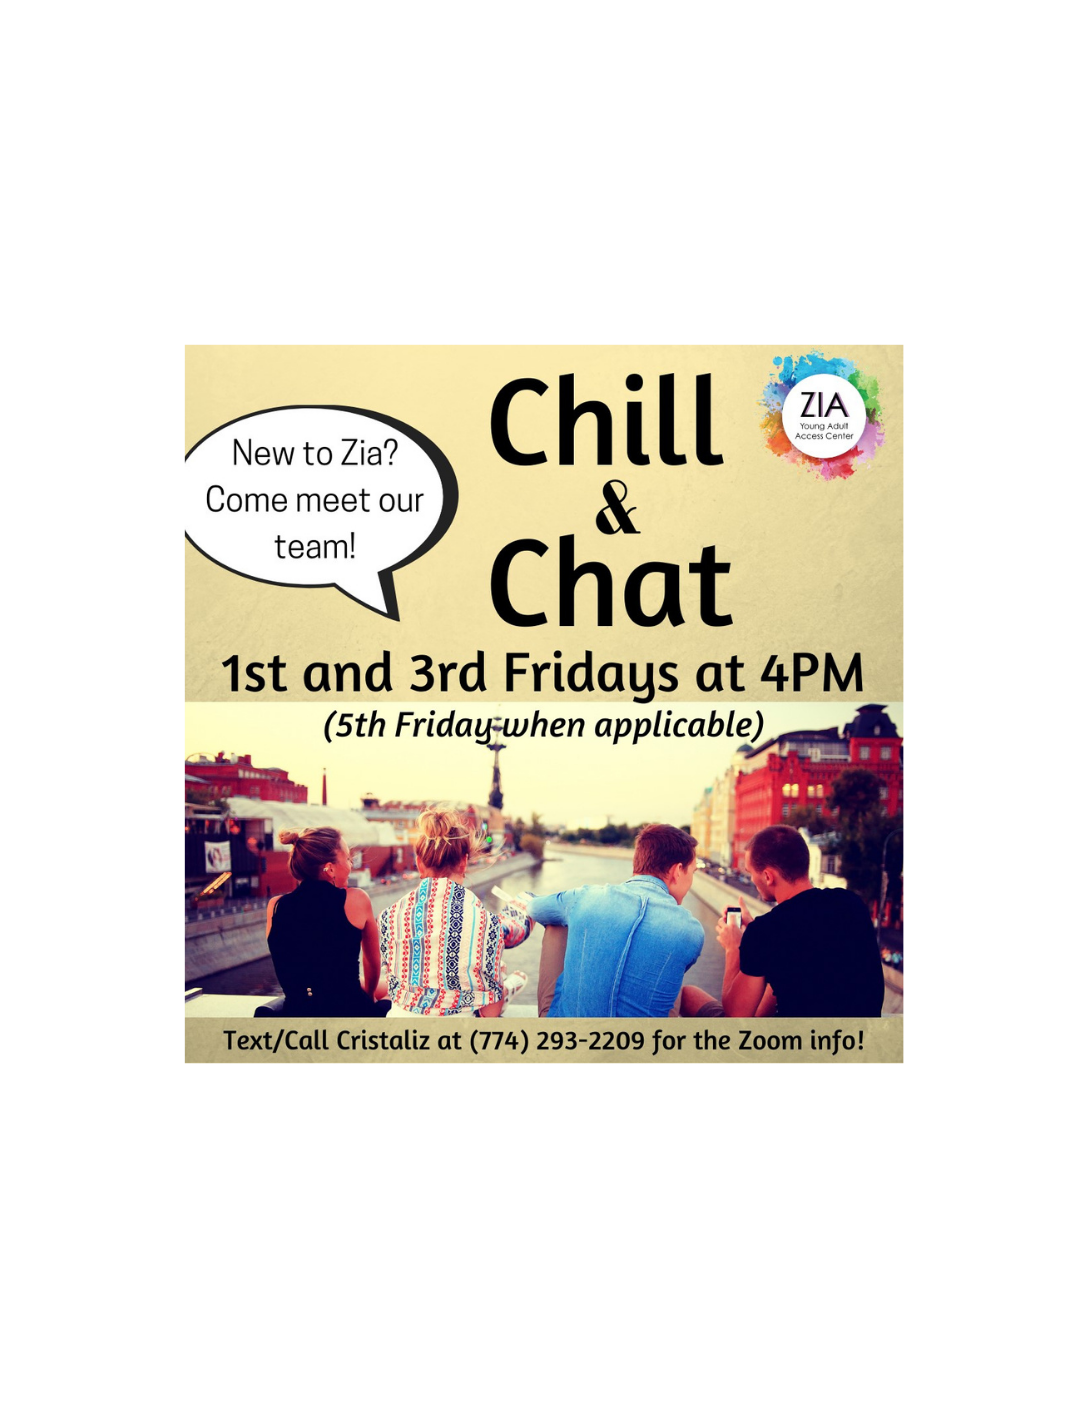 Chill & Chat - Hosted by Zia Young Adult Access Center